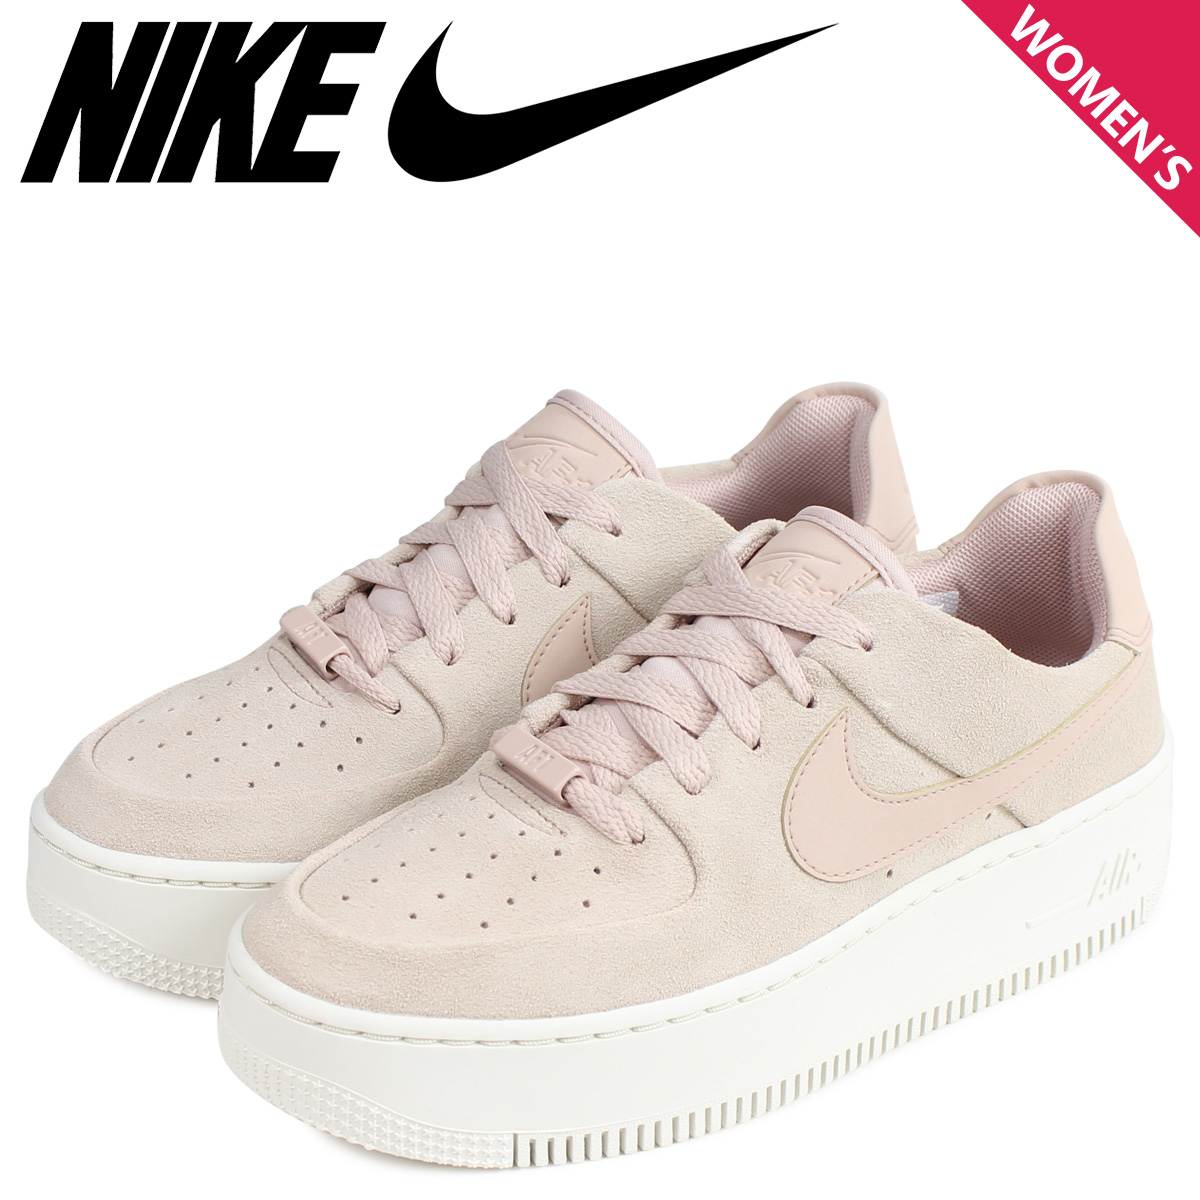 NIKE Nike air force 1 sneakers Lady's WMNS AIR FORCE 1 SAGE LOW AF1 beige AR5339 201